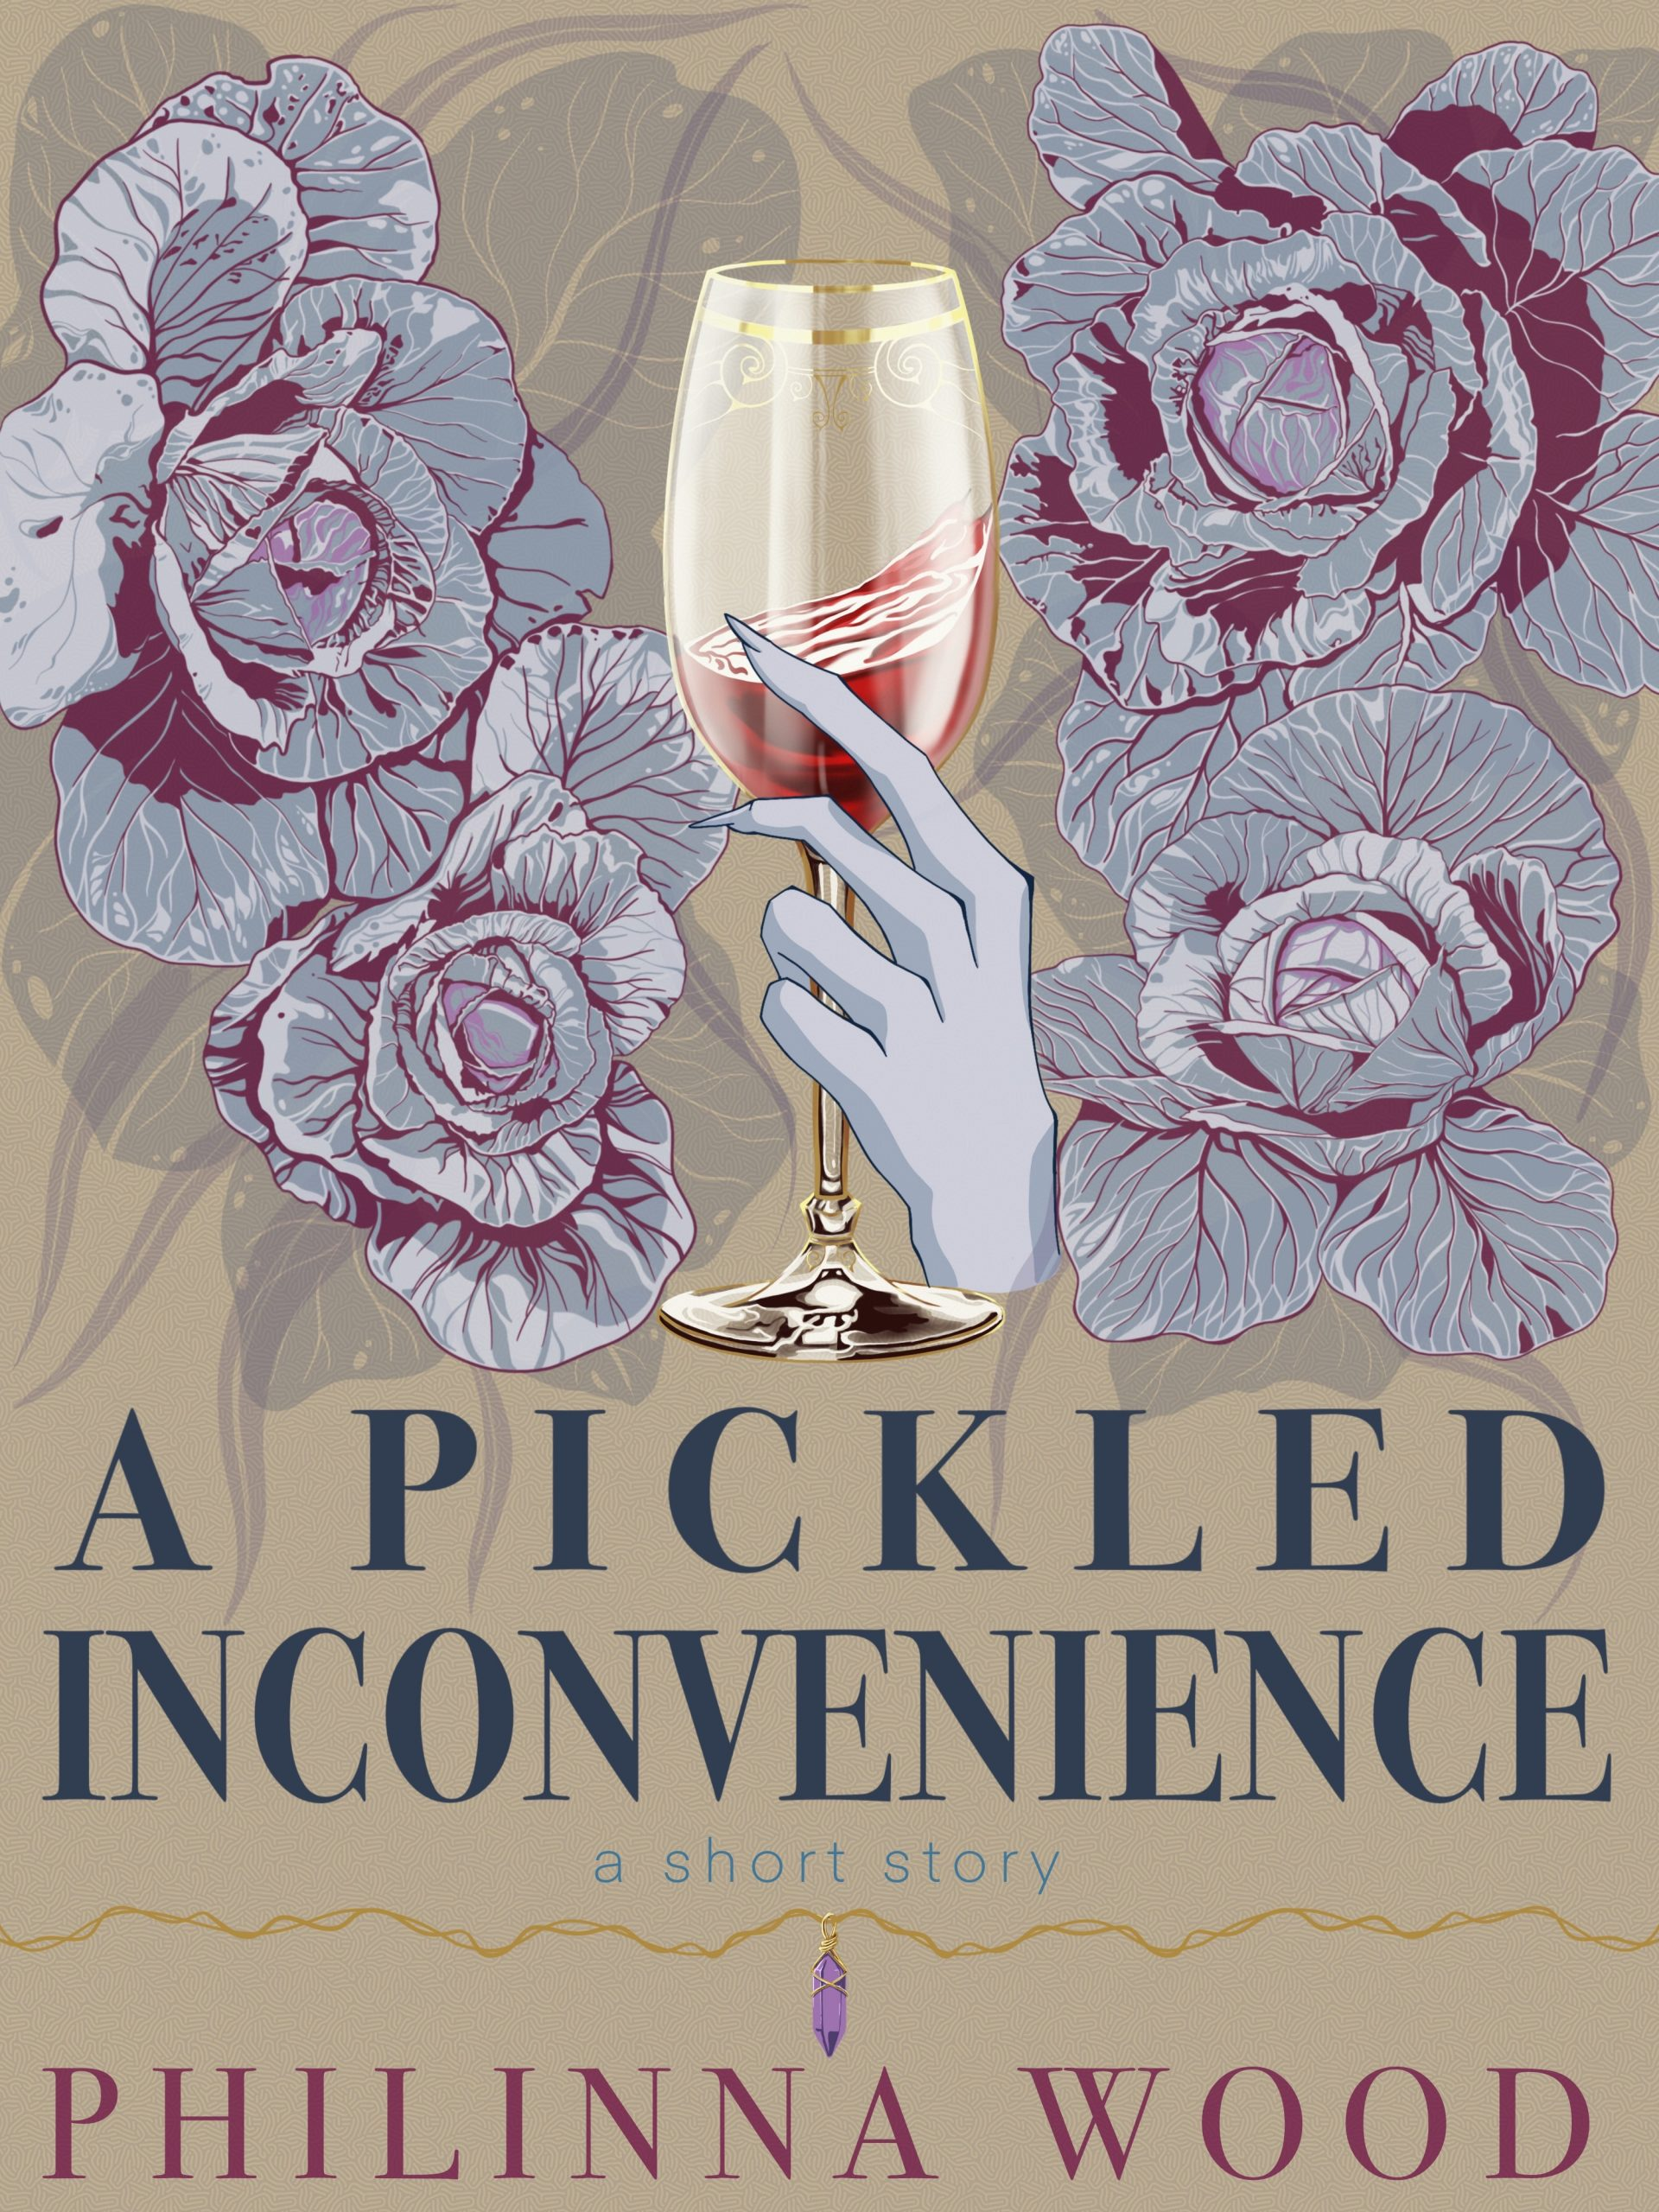 A Pickled Inconvenience